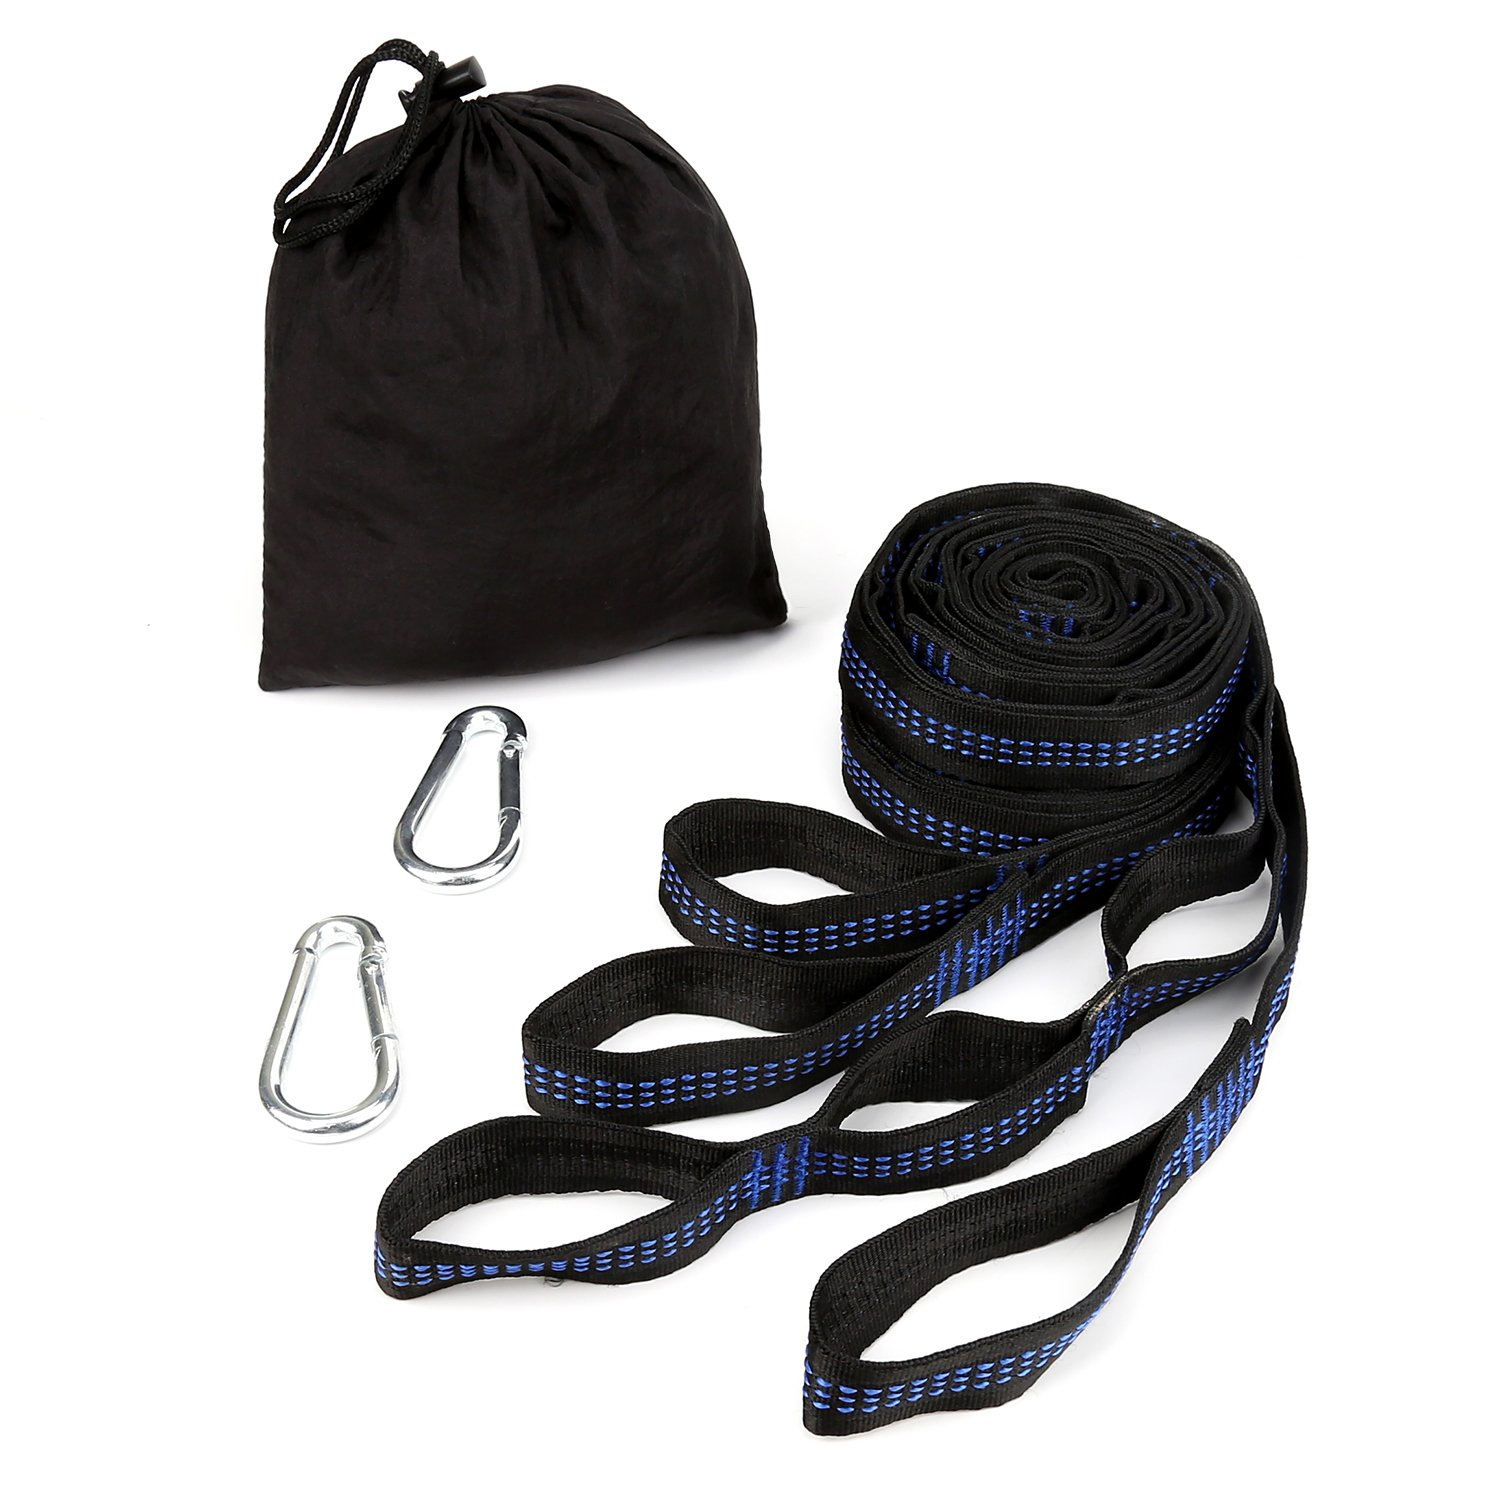 OYISIYI Hammock Straps, 9.5FT Tree Hanging Strap Set with Heavy Duty Adjustable 36 Loops for Camping, Hiking or Backyard (2 Free Carabiners Included)